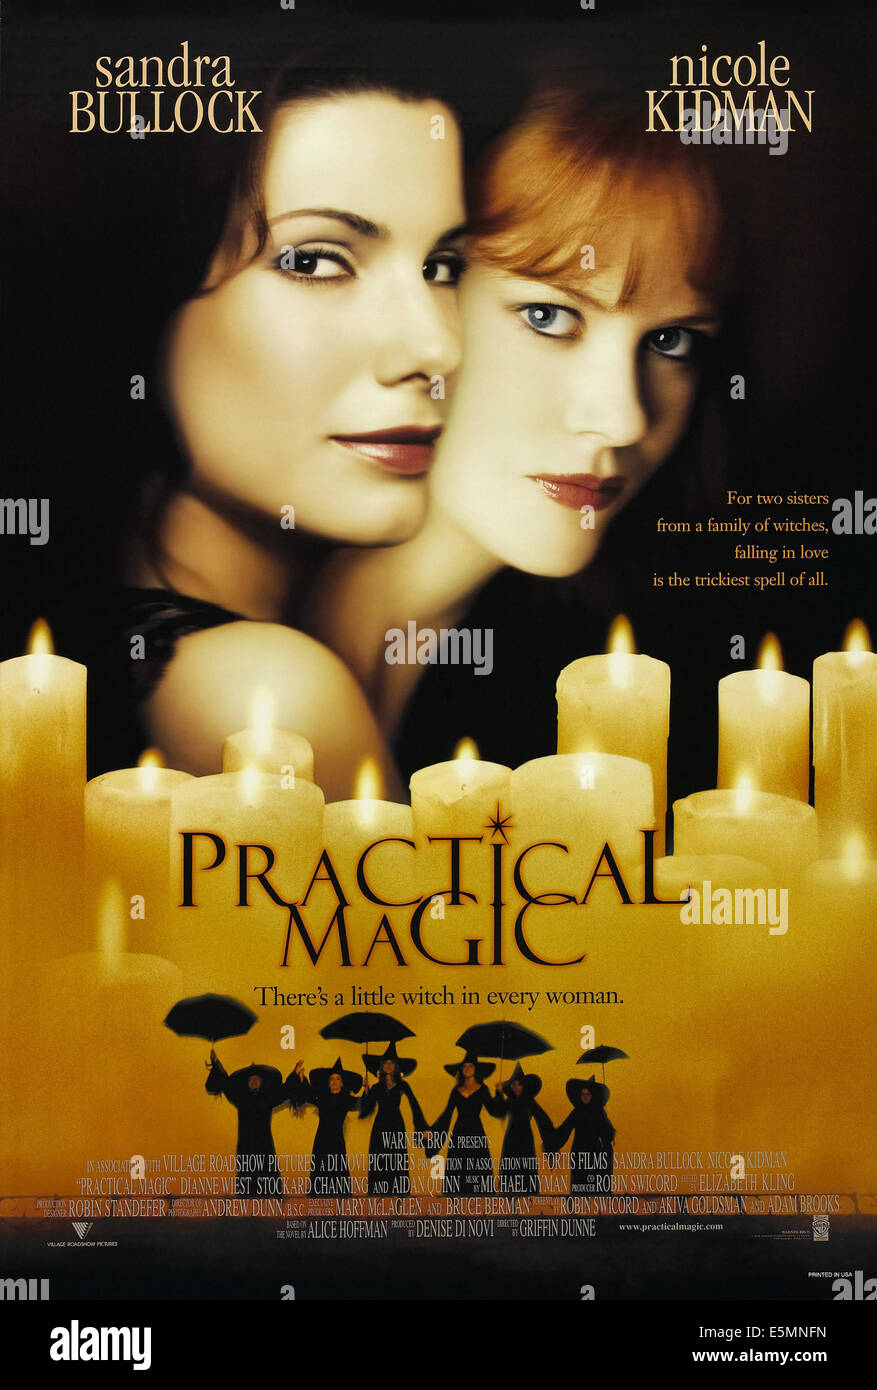 PRACTICAL MAGIC, from left, Sandra Bullock, Nicole Kidman, 1998, ©Warner Brothers/courtesy Everett Collection - Stock Image